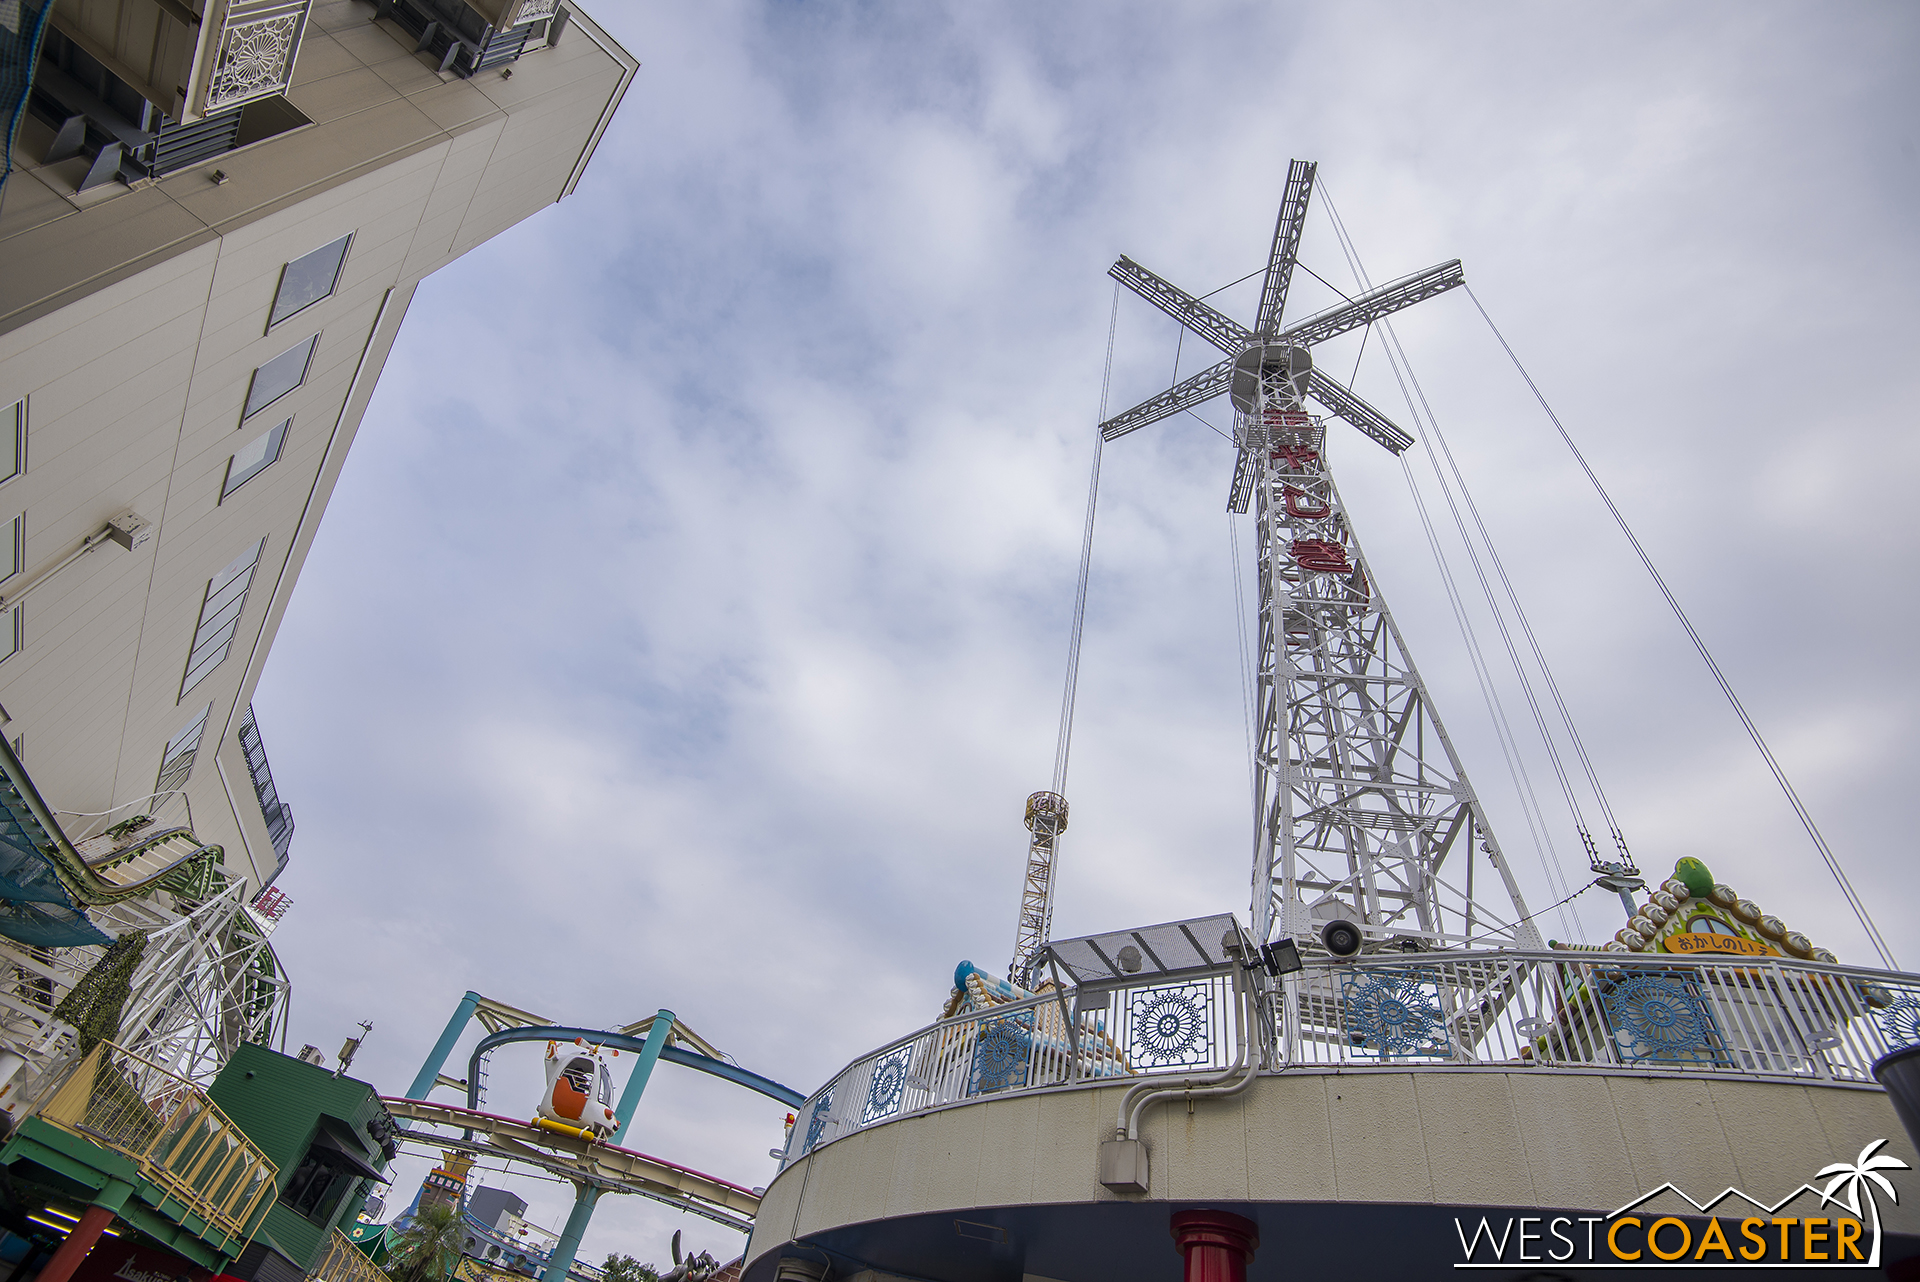 Riders were hoisted up several dozen feet in the air to look around, but unfortunately, this attraction was demolished earlier this year.